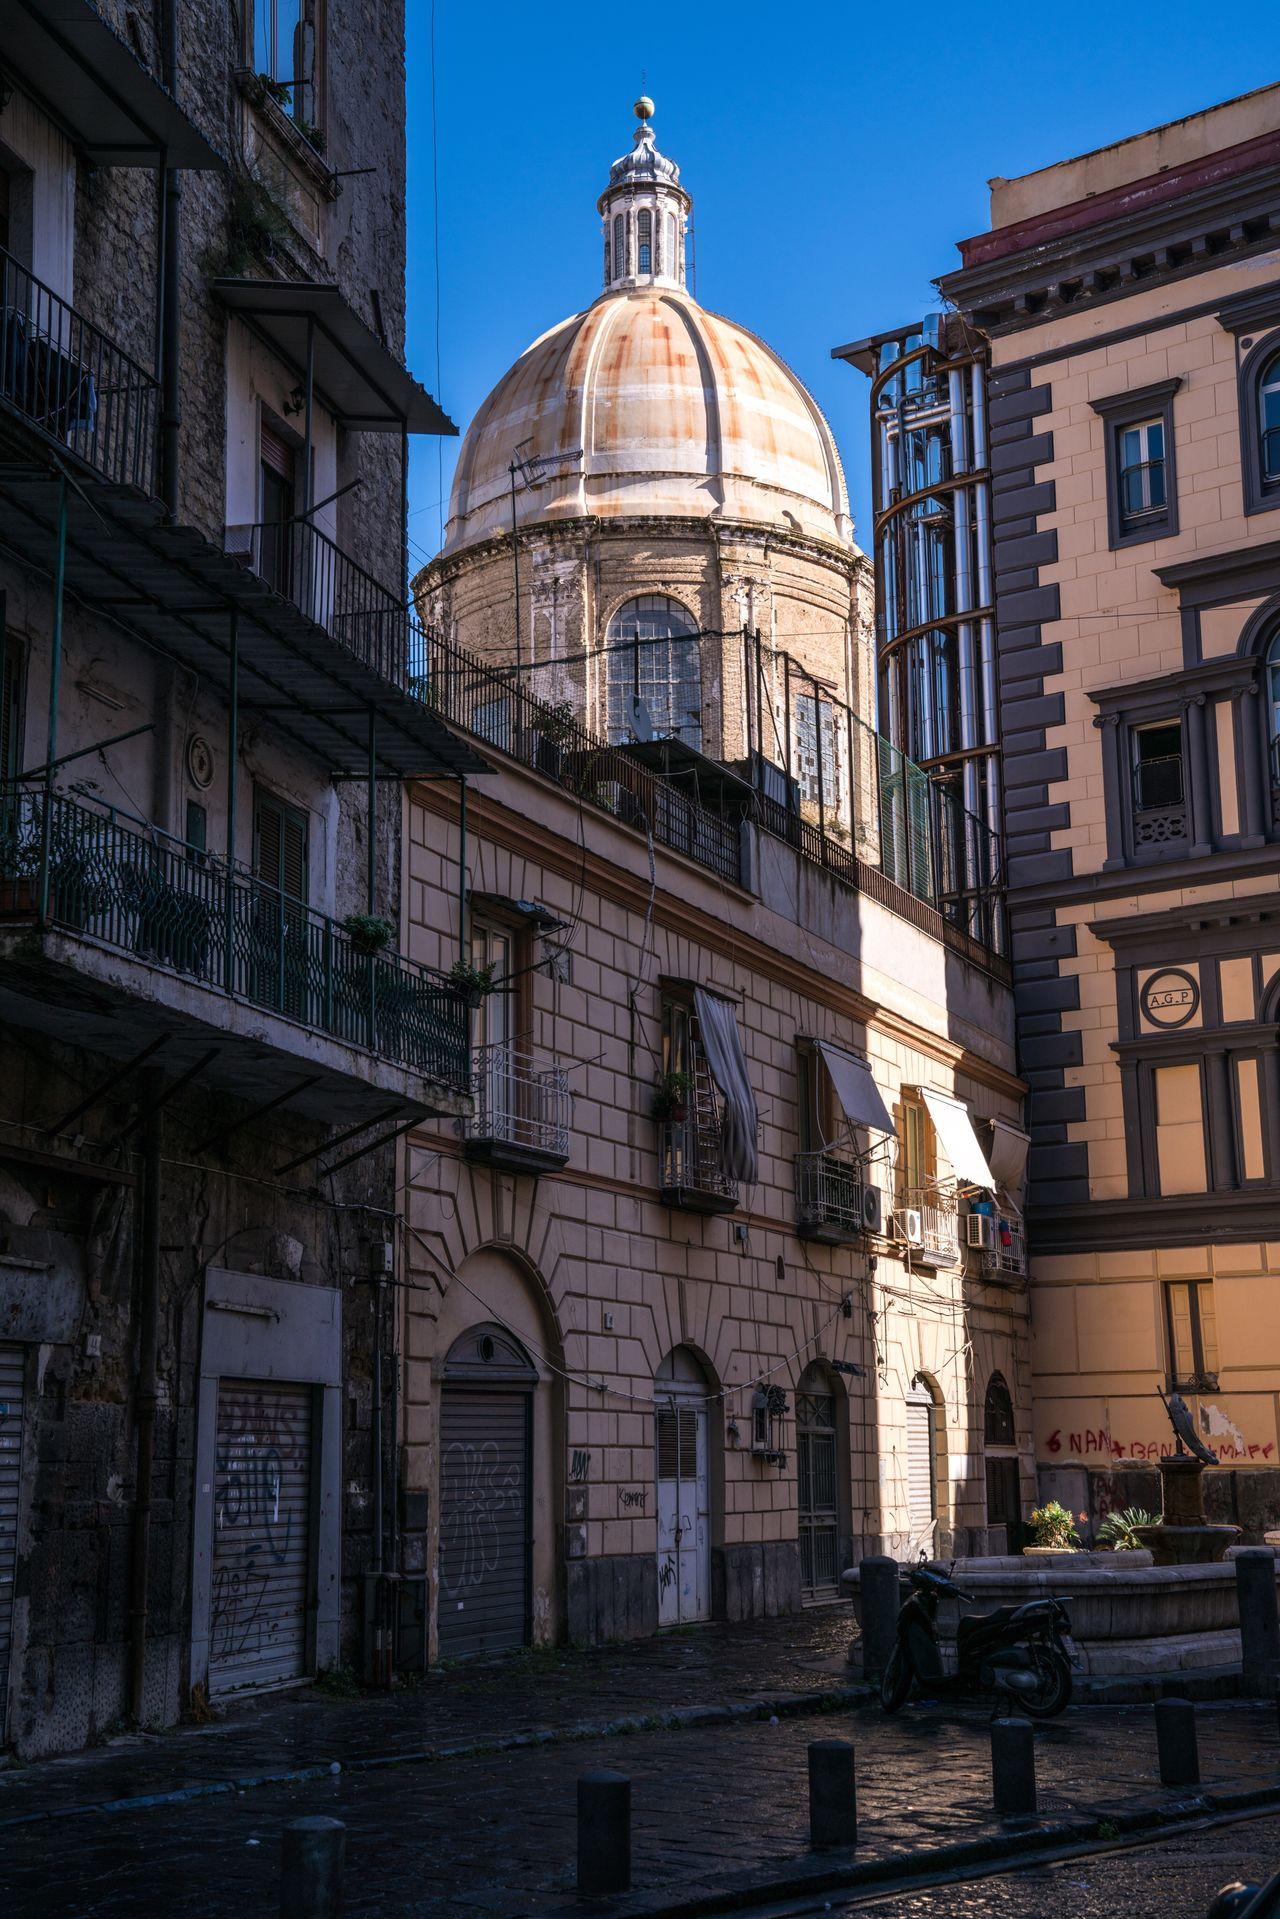 Buongiorno Napoli. Architecture Building Exterior Built Structure Dome Religion City Outdoors Spirituality Day Light And Shadow Napoli Naples Bella Italia Italy Italia Church Streetphotography Travel Traveling Travel Destinations